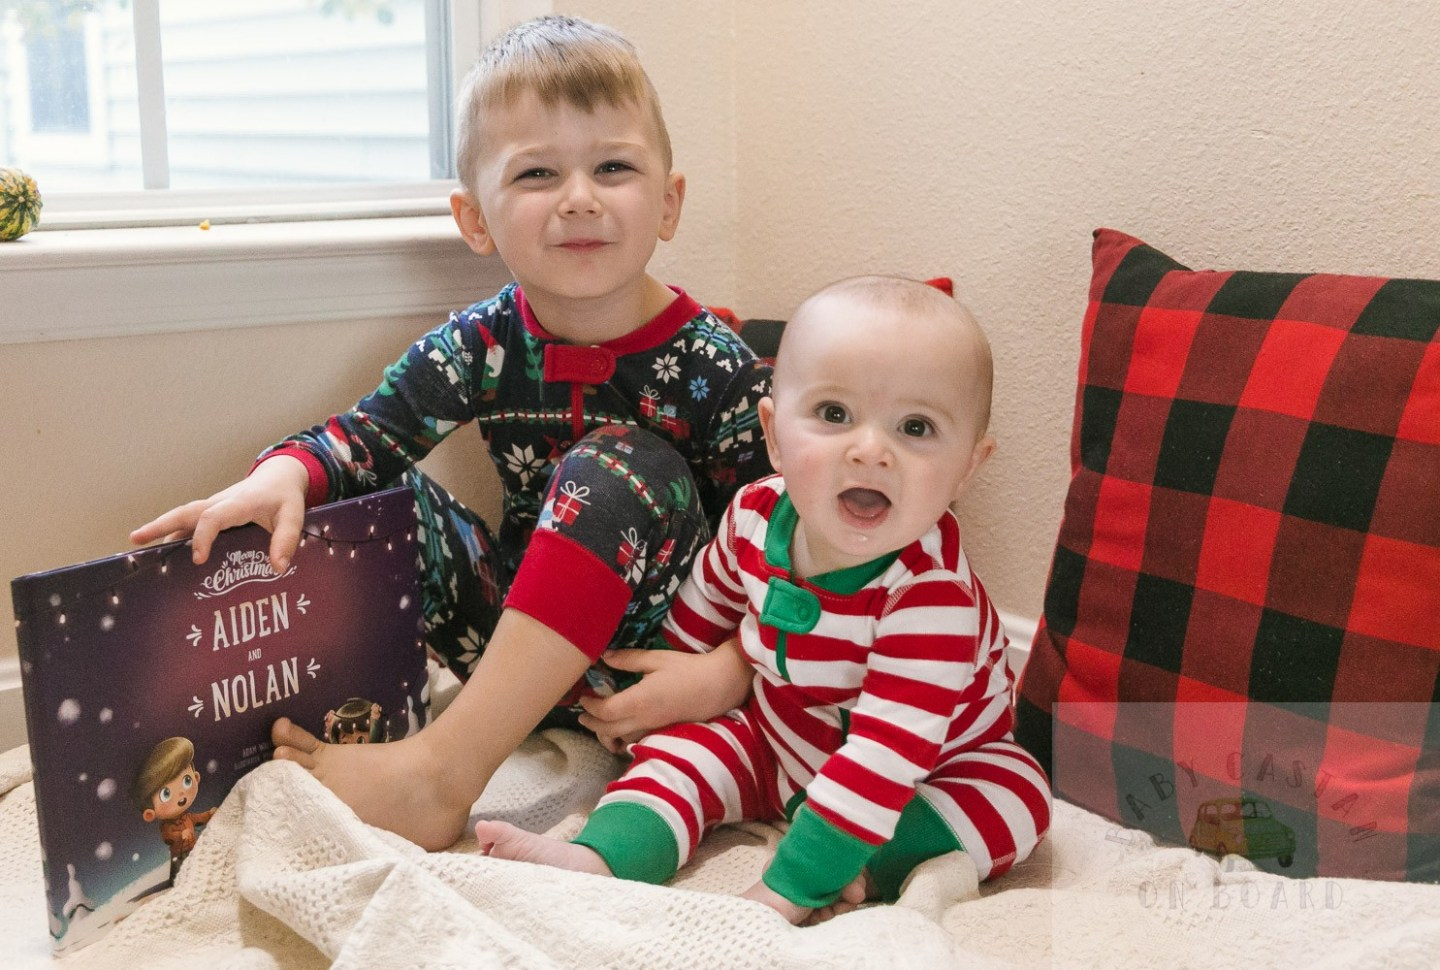 A Round Up of the Cutest Holiday Pajamas for Siblings